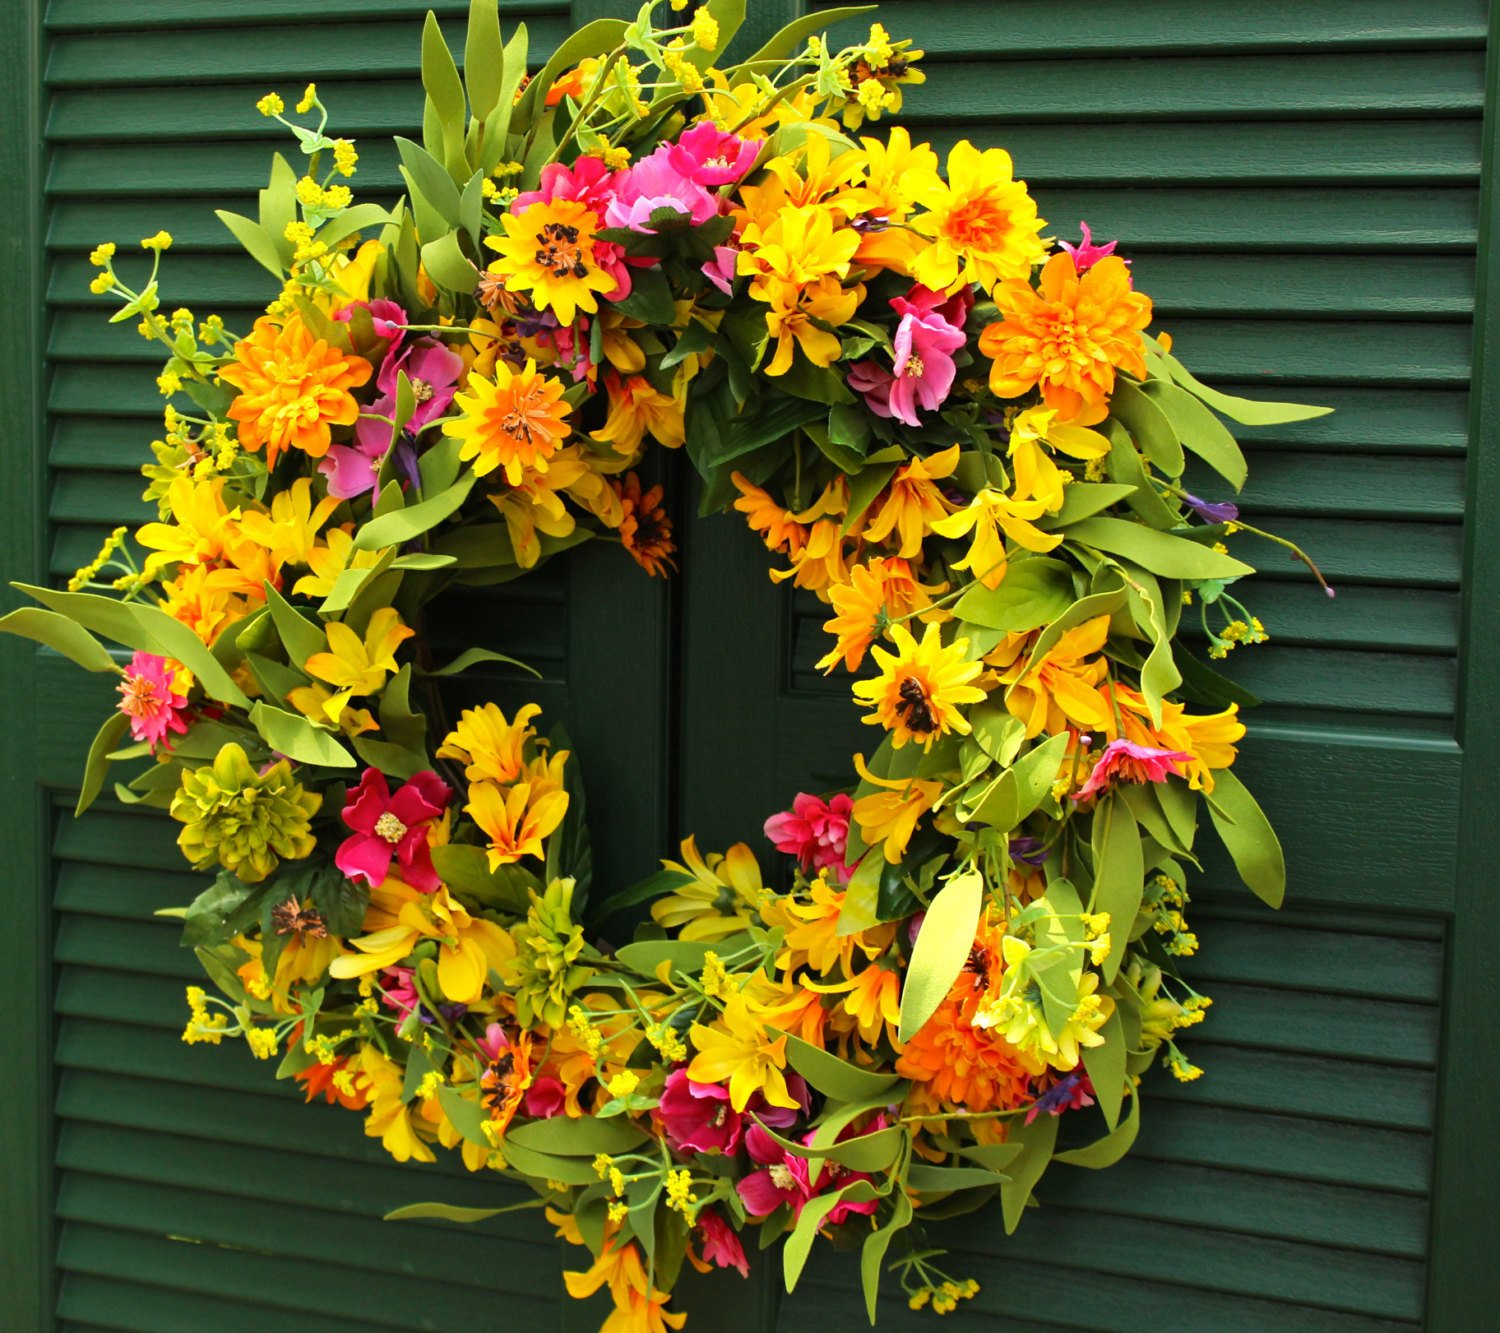 Floral Summer Door Wreath - Flower Wreath